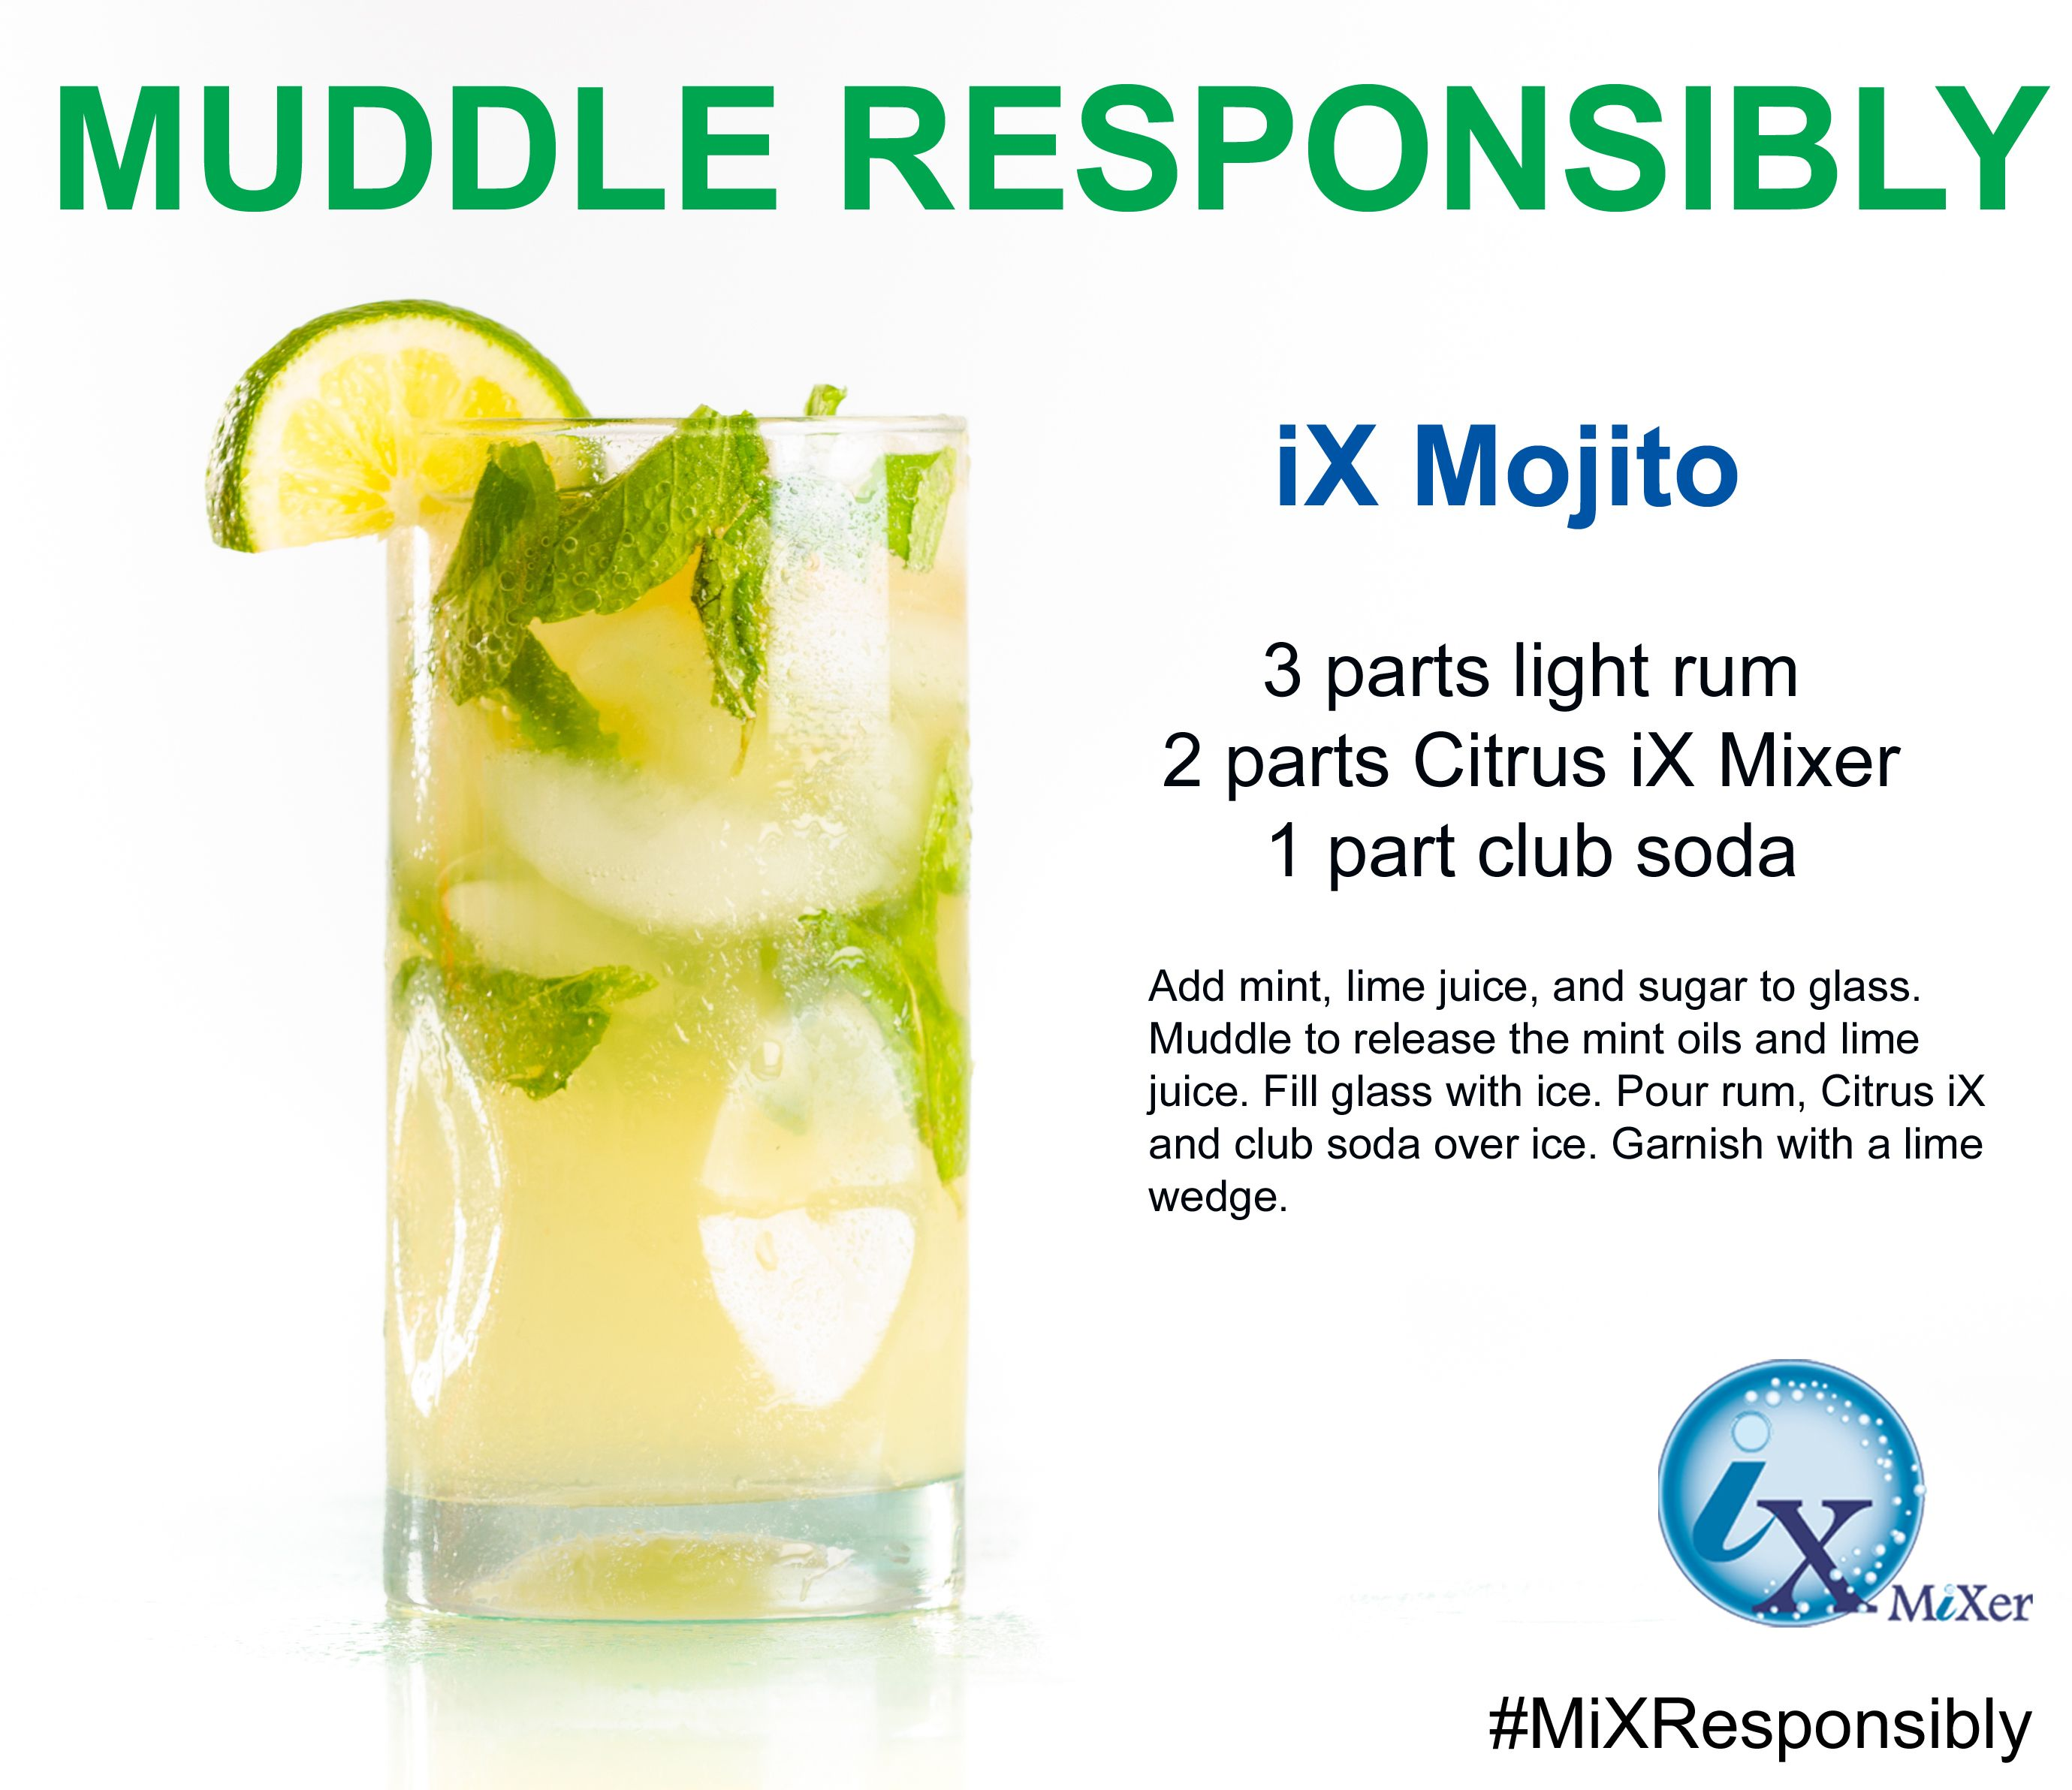 Mint And Summer Go Perfectly Together Check Out This Mojito Recipes Http Www Ixmixer Com Recipes Mint Oil Light Rum Mojito Recipe